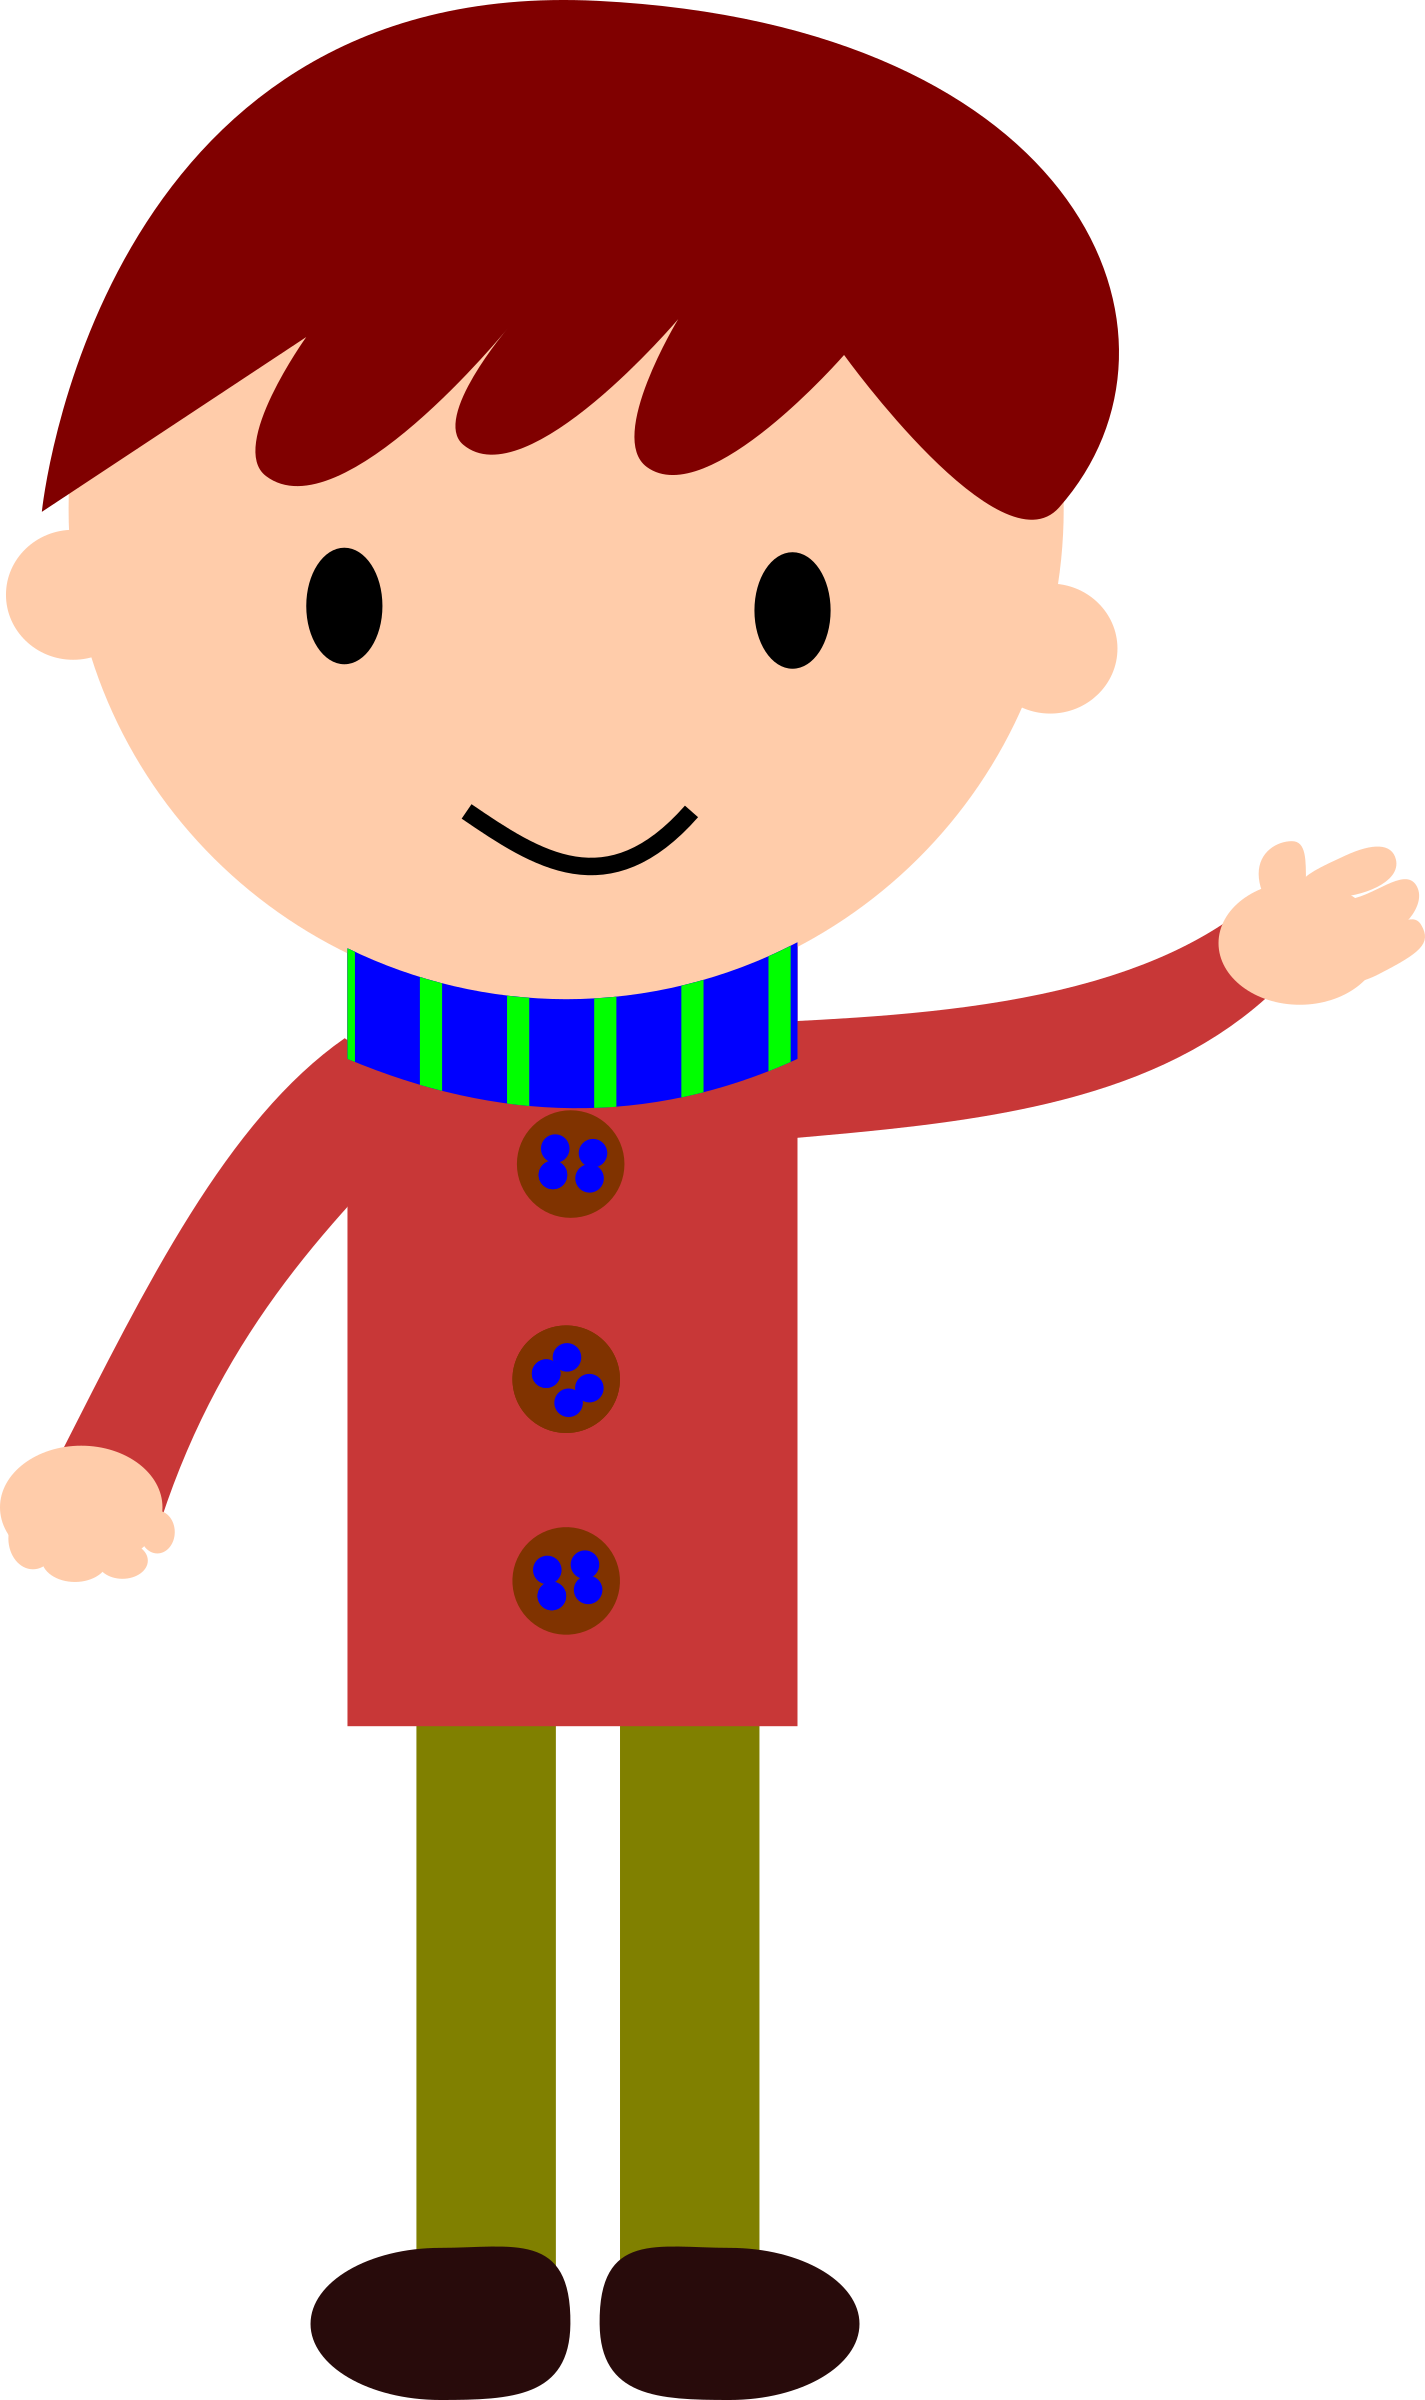 Transparent boy. Waving clipart group hand